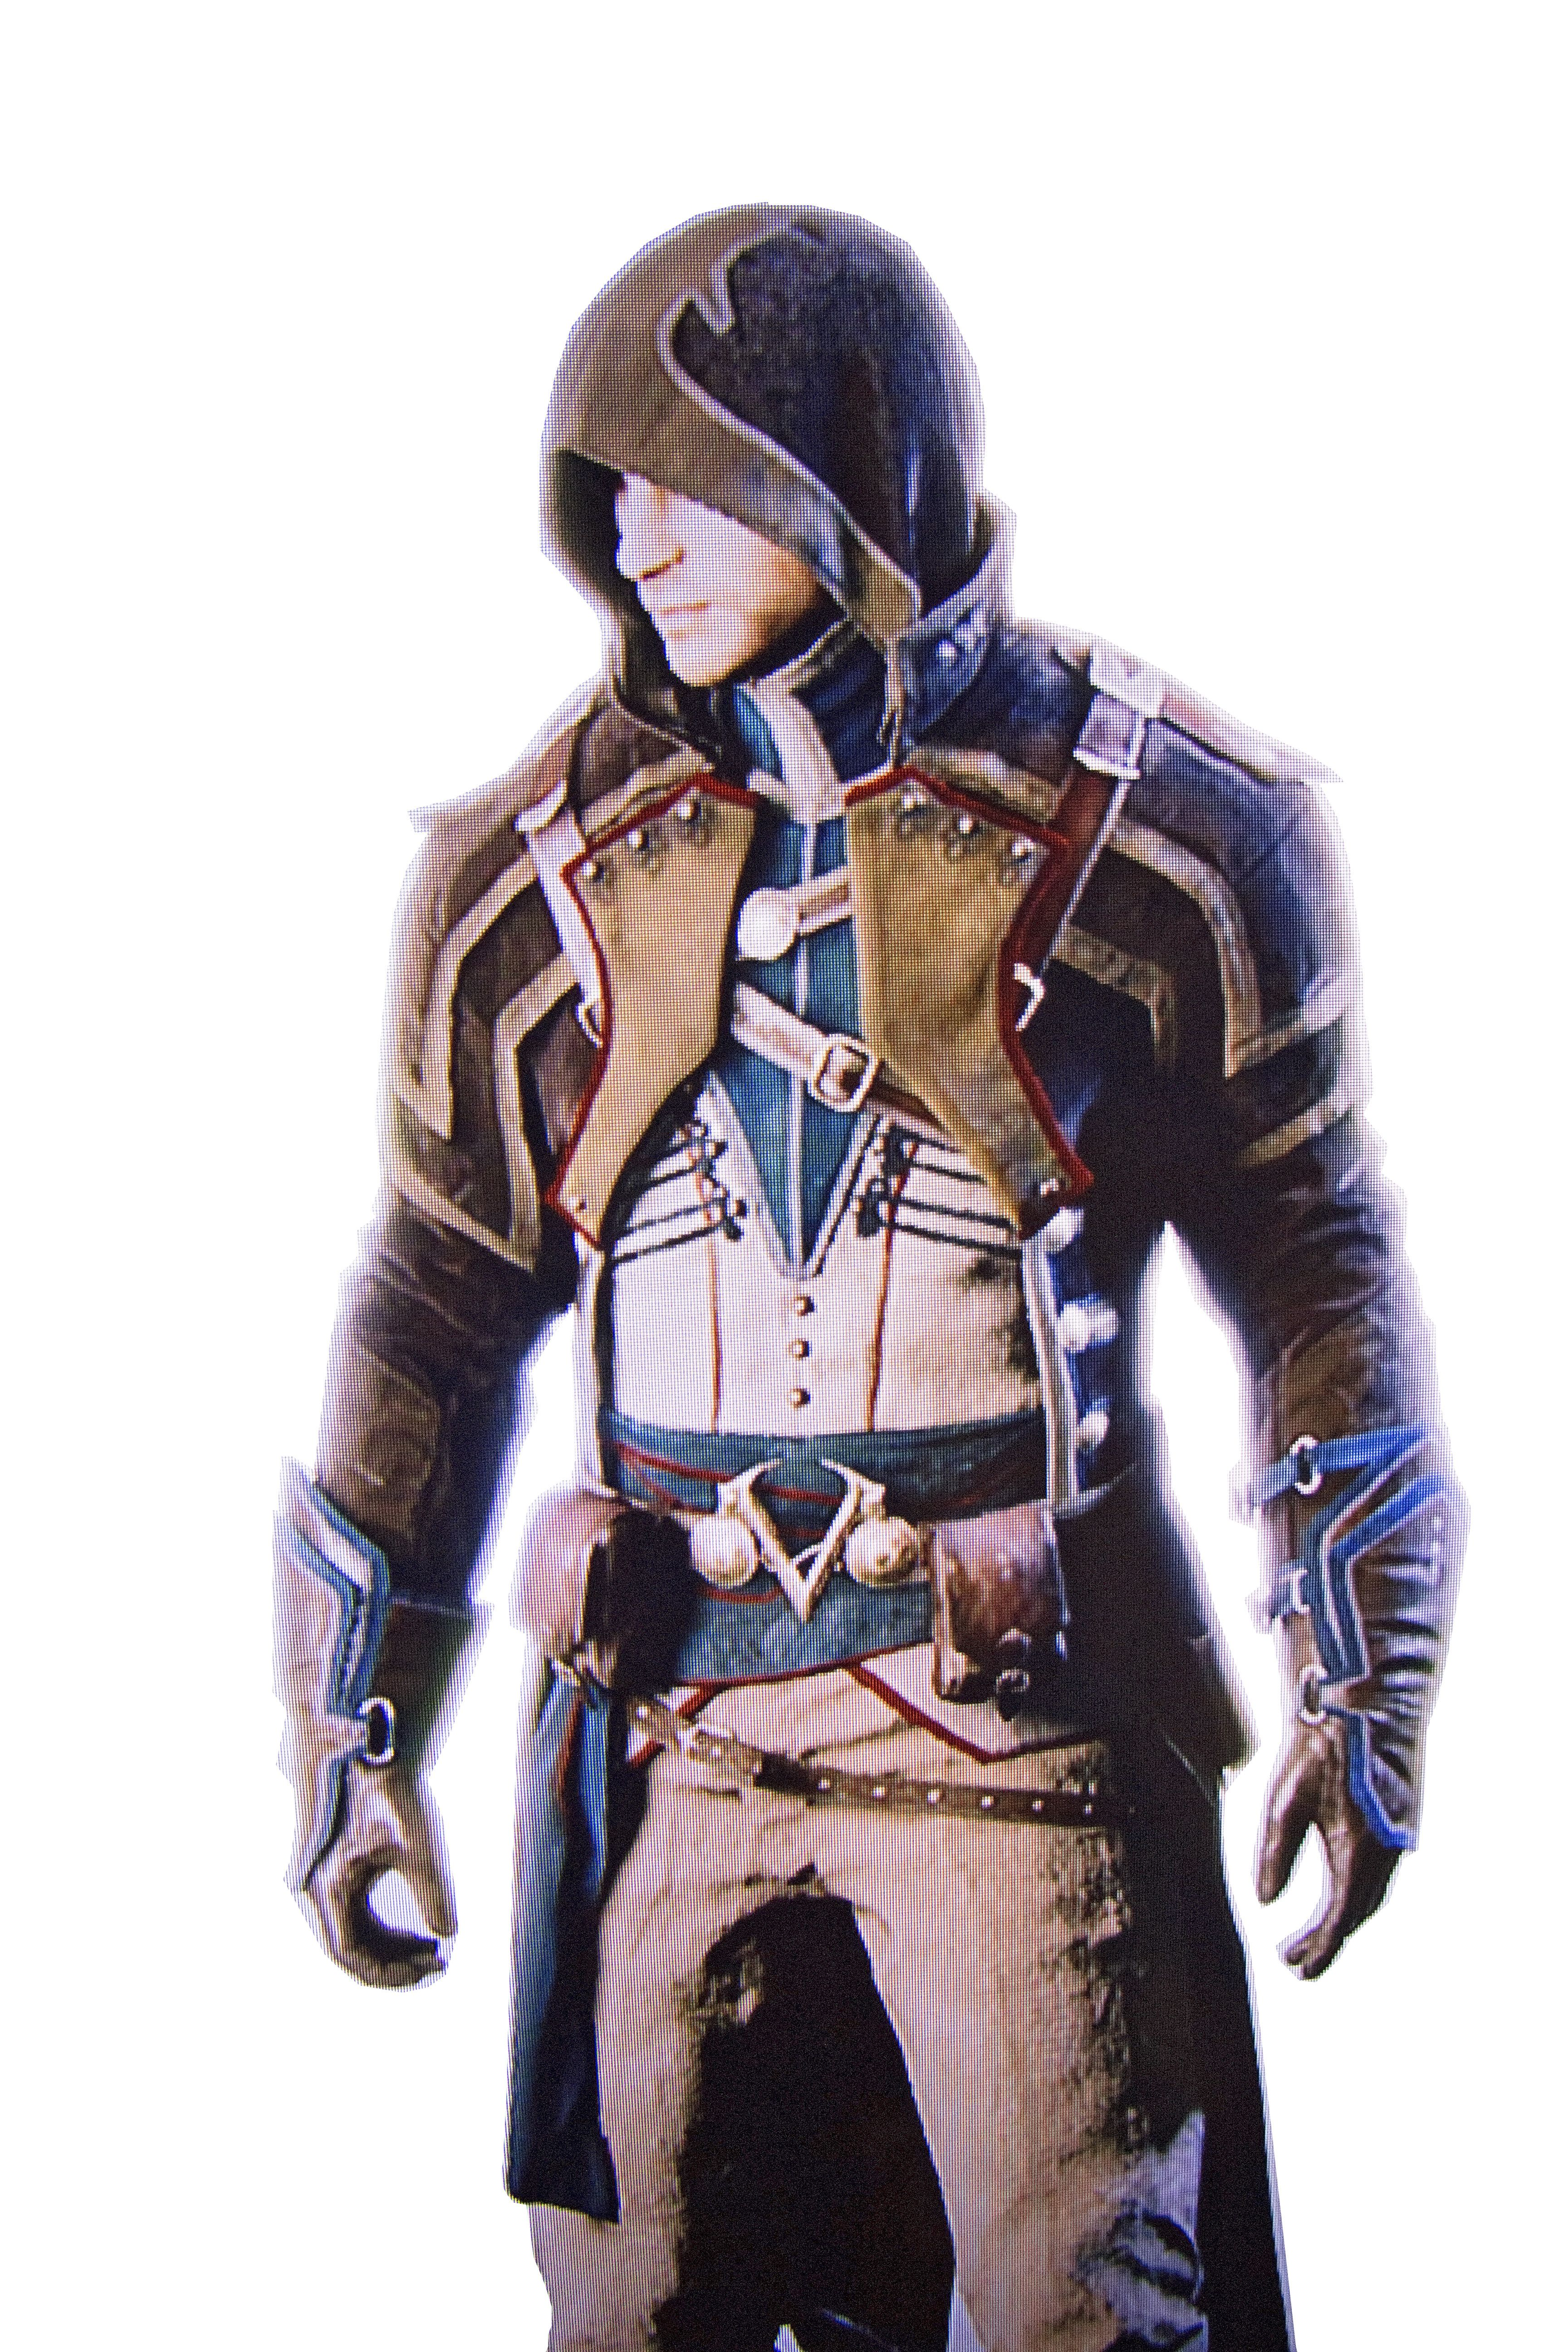 Arno Master Assassin outfit front details | Assassin's ...